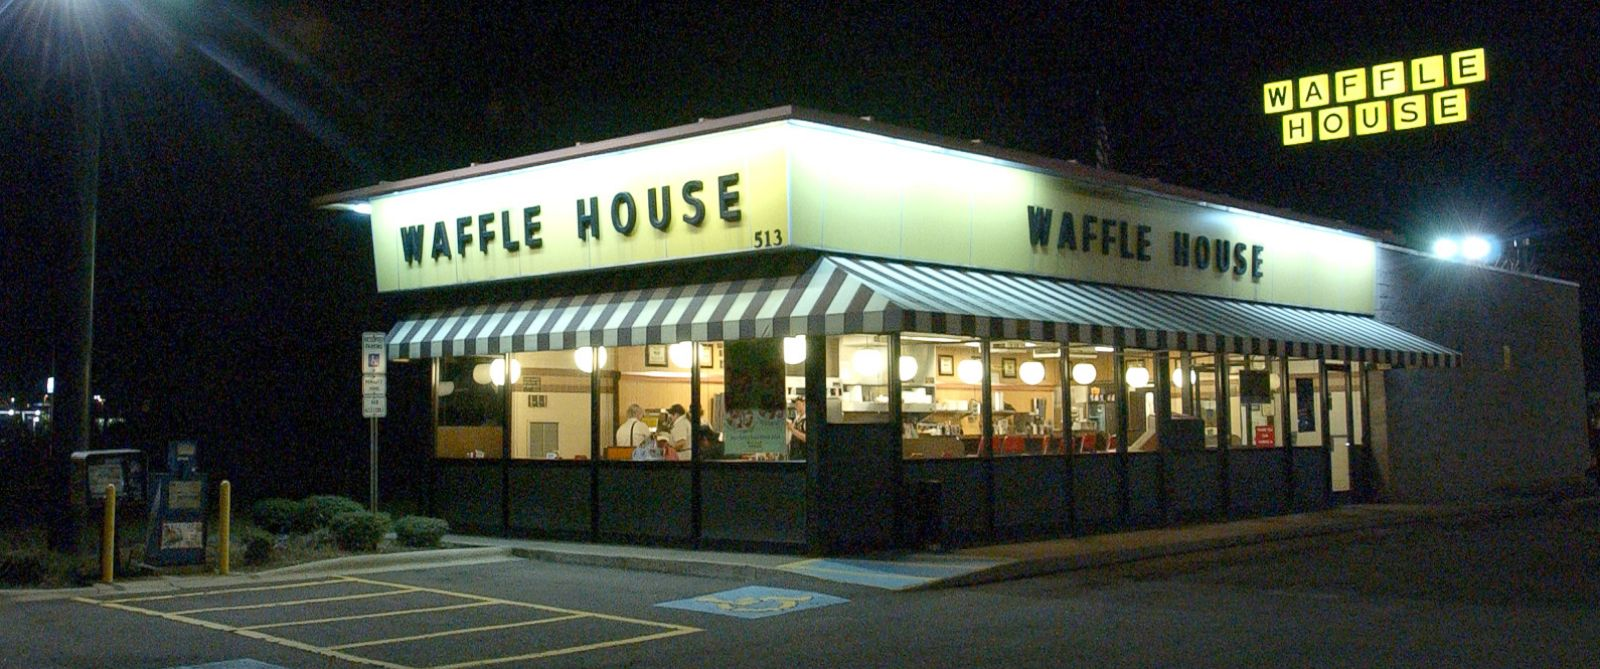 PHOTO: The Waffle House restaurant chain in Winston-Salem, North Carolina, Jan. 24, 2005.